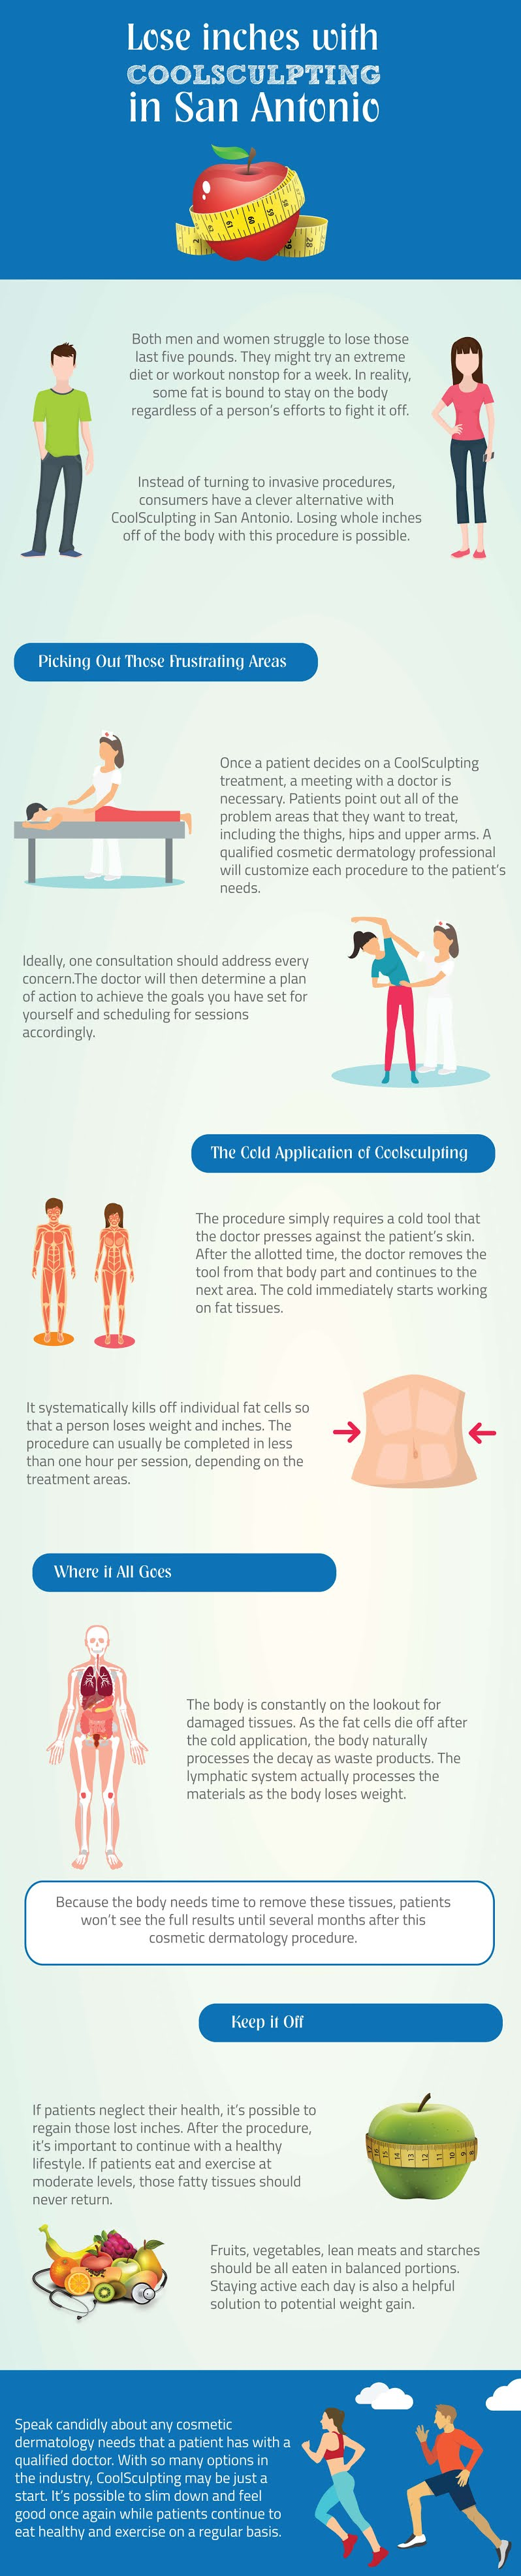 Lose Inches With Coolsculpting in San Antonio #infographic